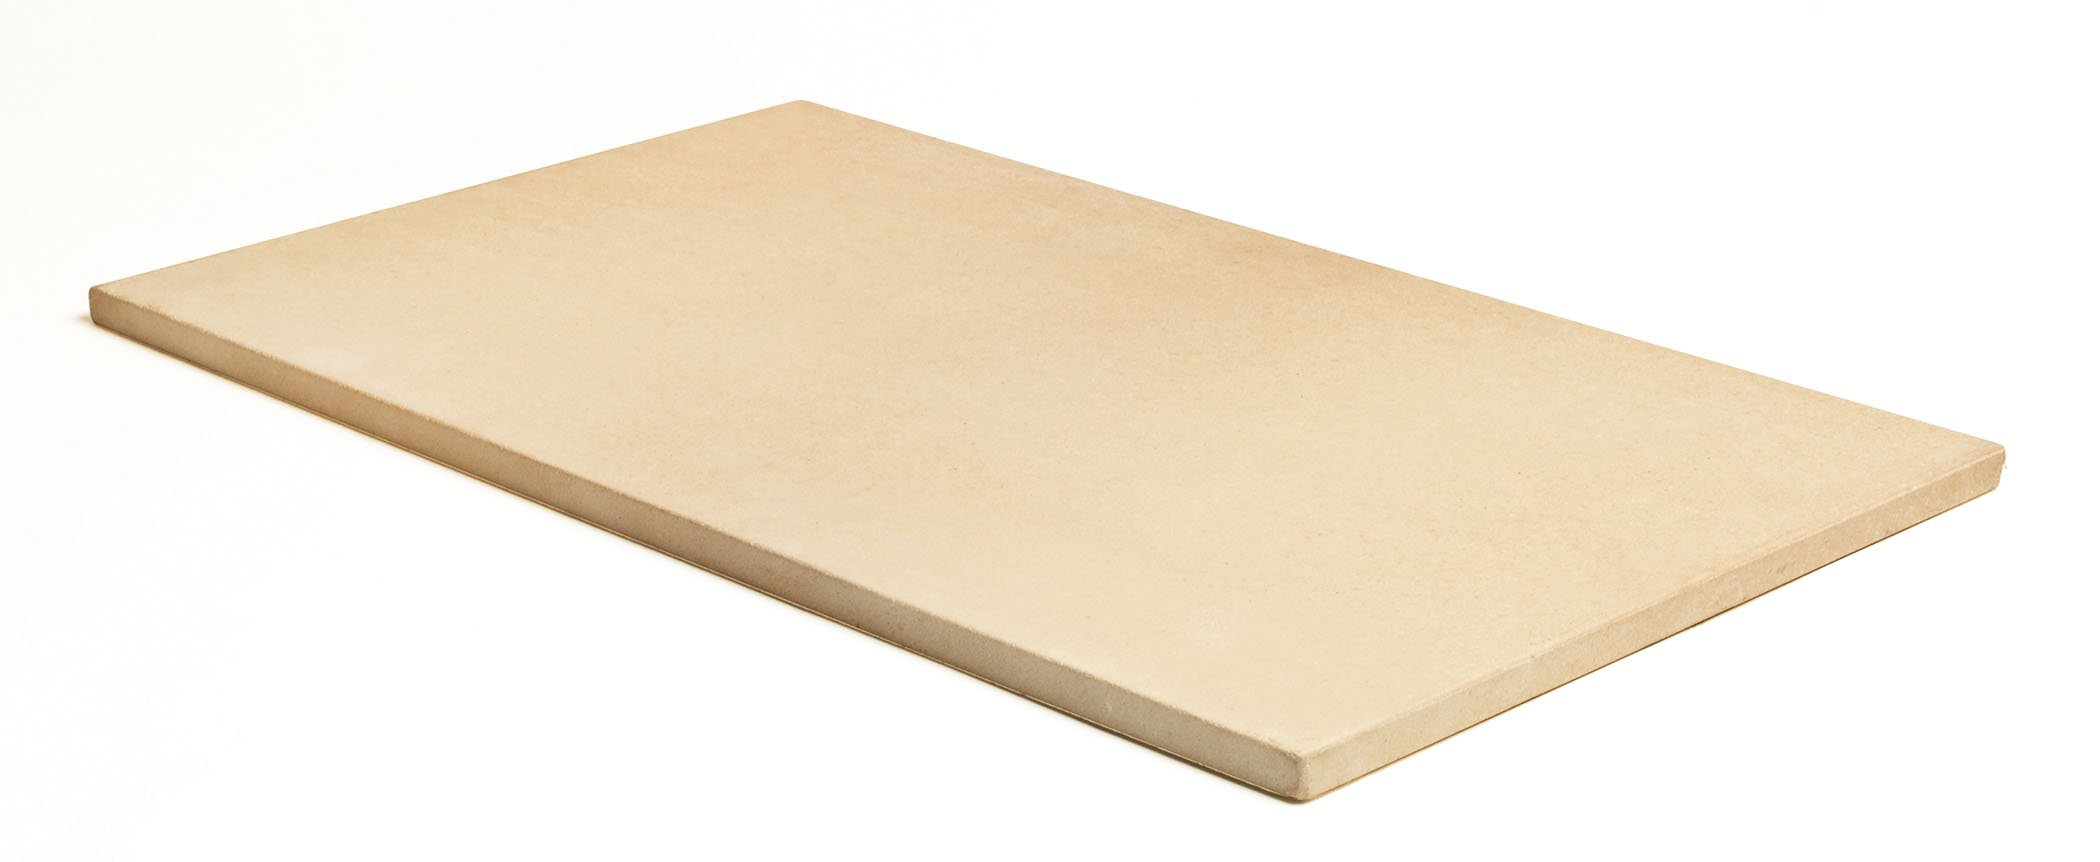 Pizzacraft PC9899 20 x 13.5 Rectangular ThermaBond Baking/Pizza Stone for Oven or Grill by Pizzacraft